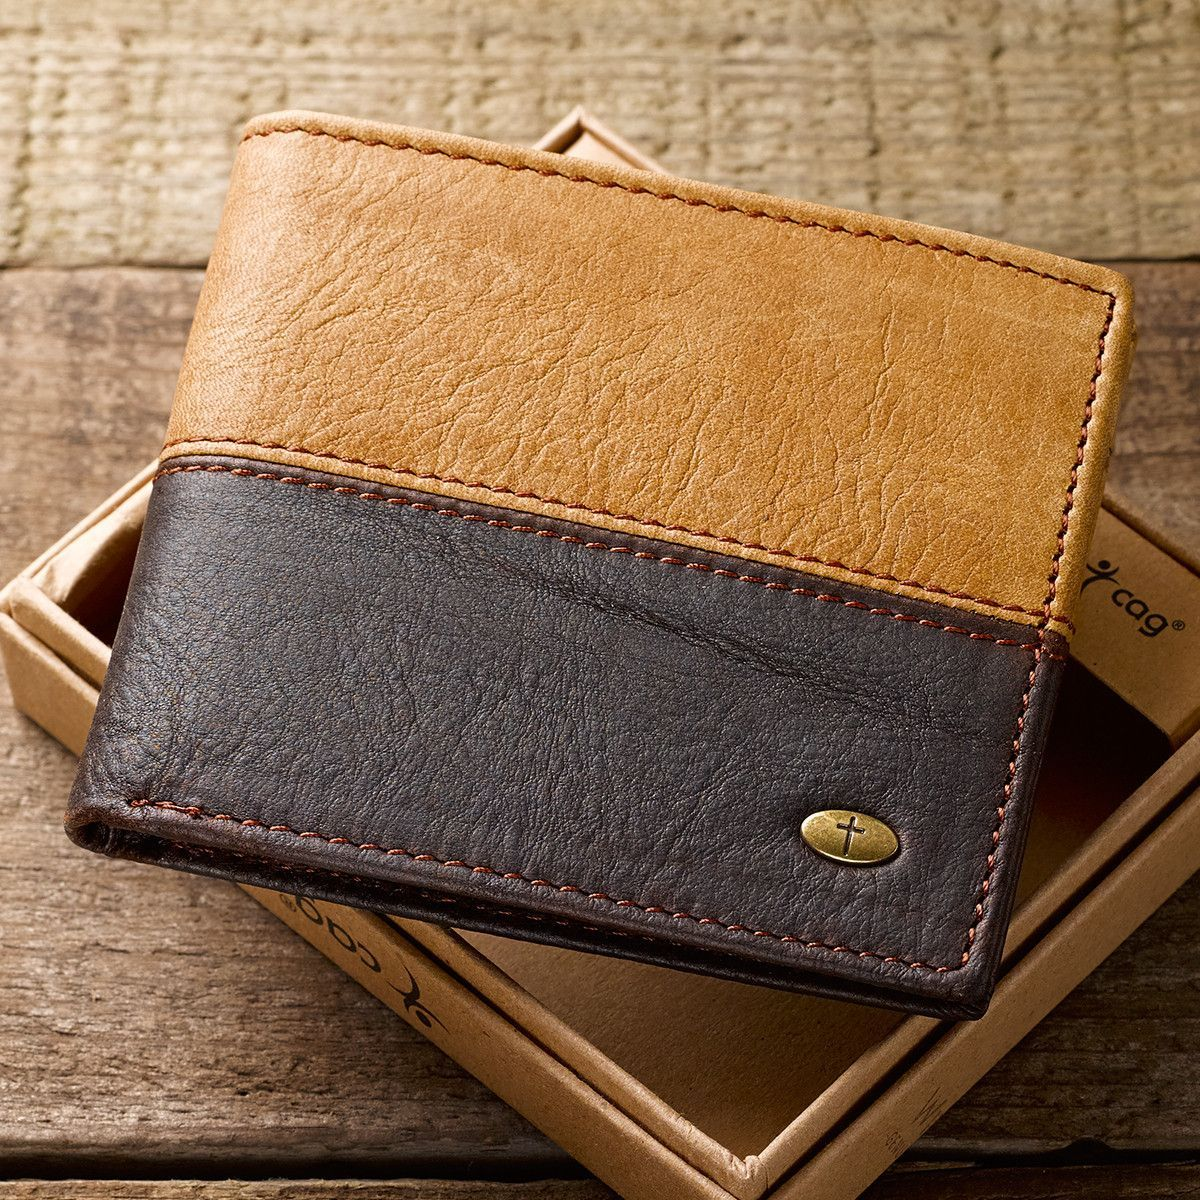 f25135194be6e Our black and brown men s leather wallet, with contrast stitching, sports  an antique brass, cross-engraved stud. Inside are 2 full length bill fold  pockets, ...